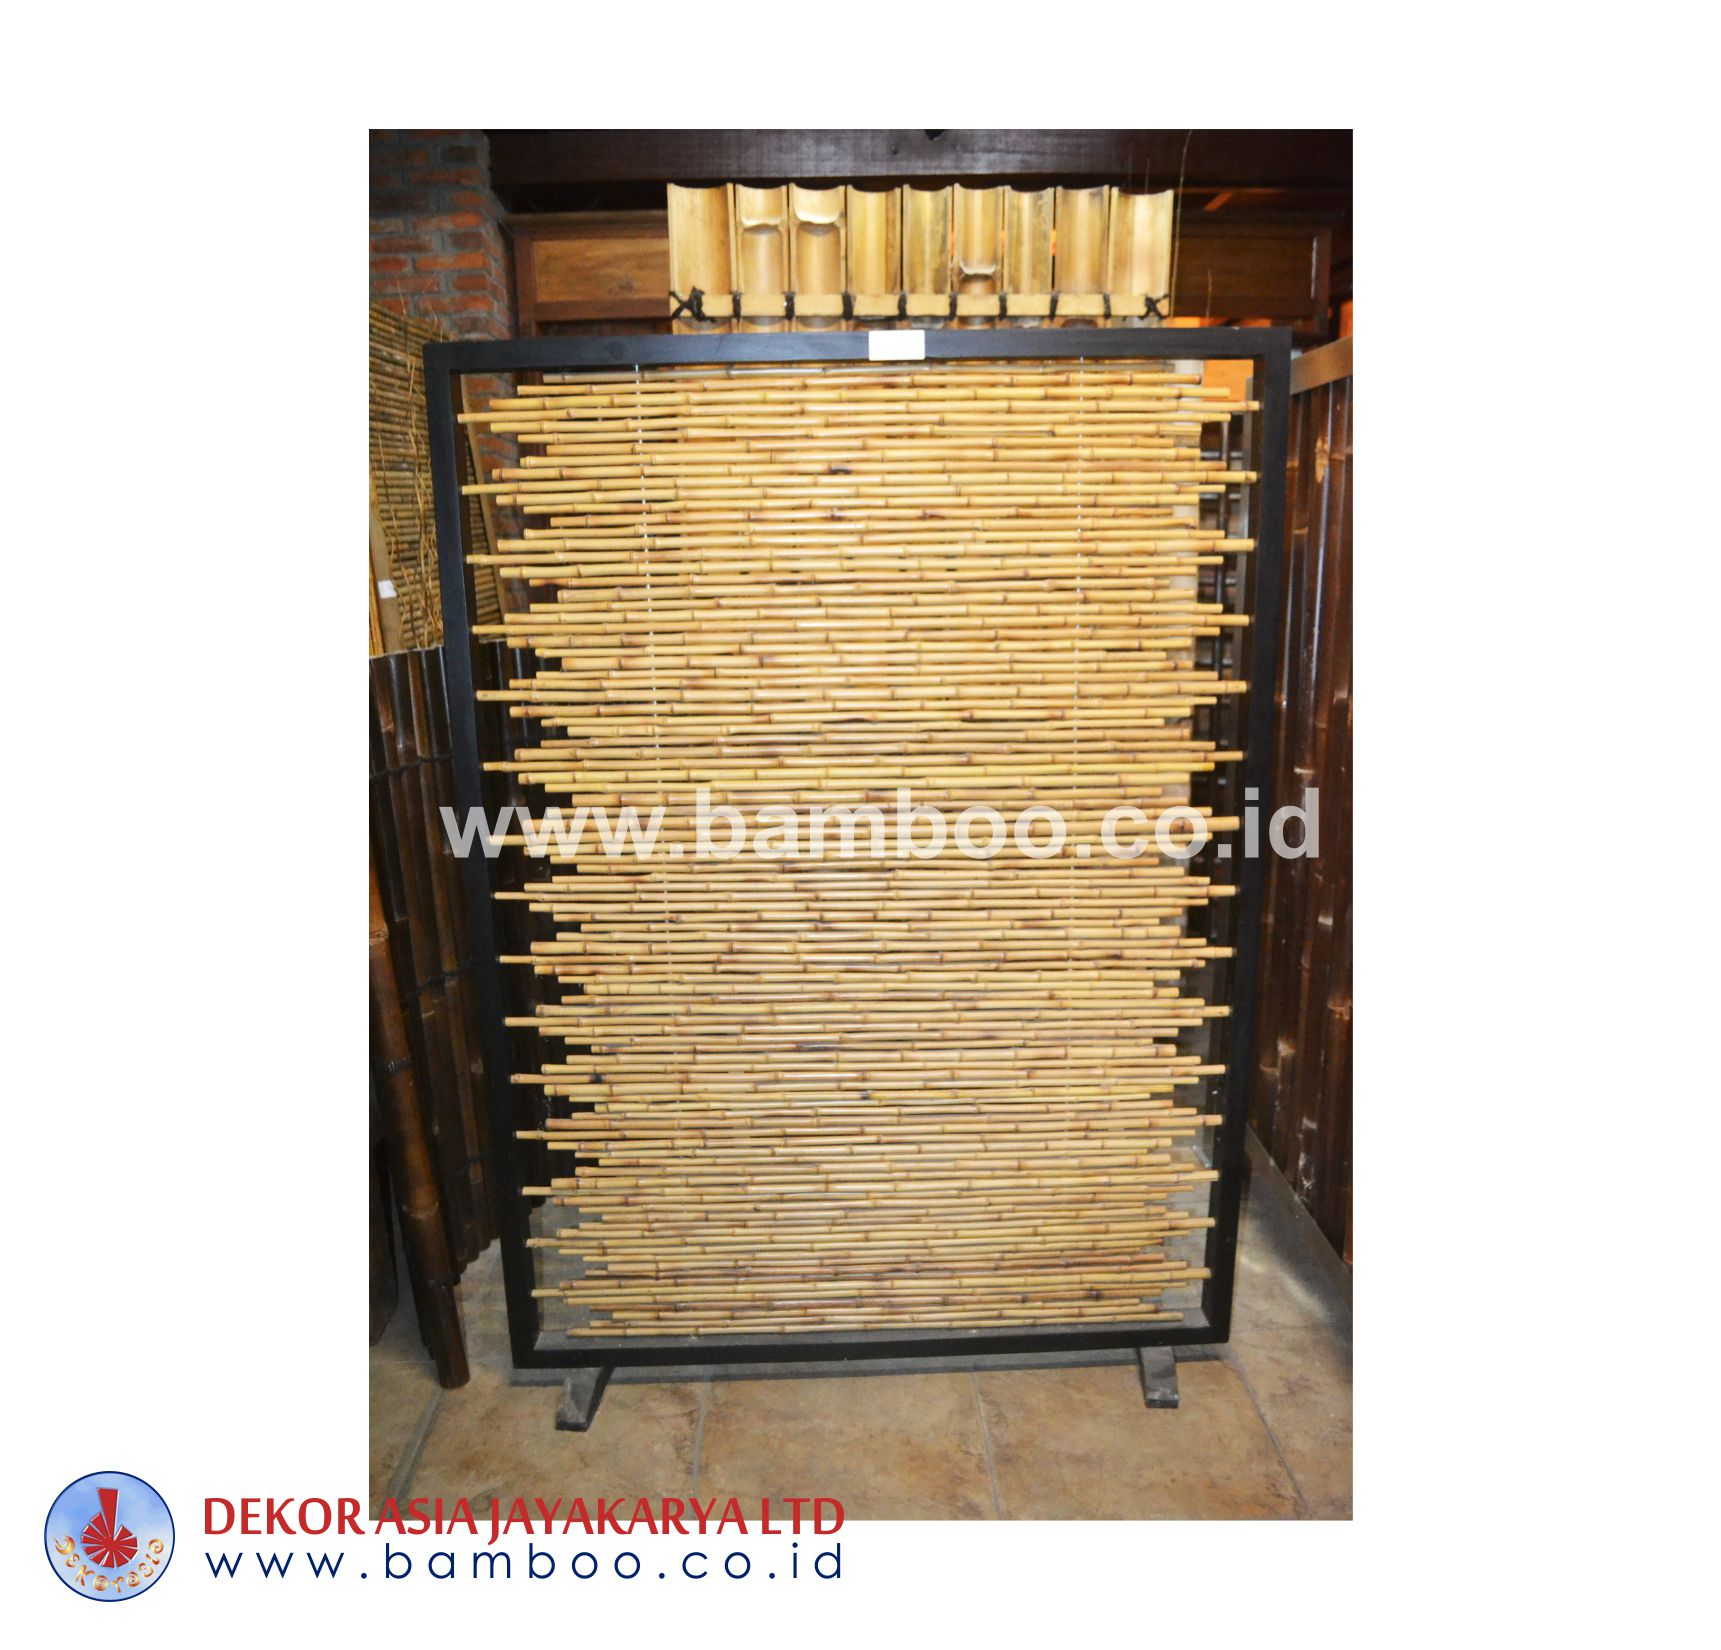 Bamboo Cendani Frame With Wood